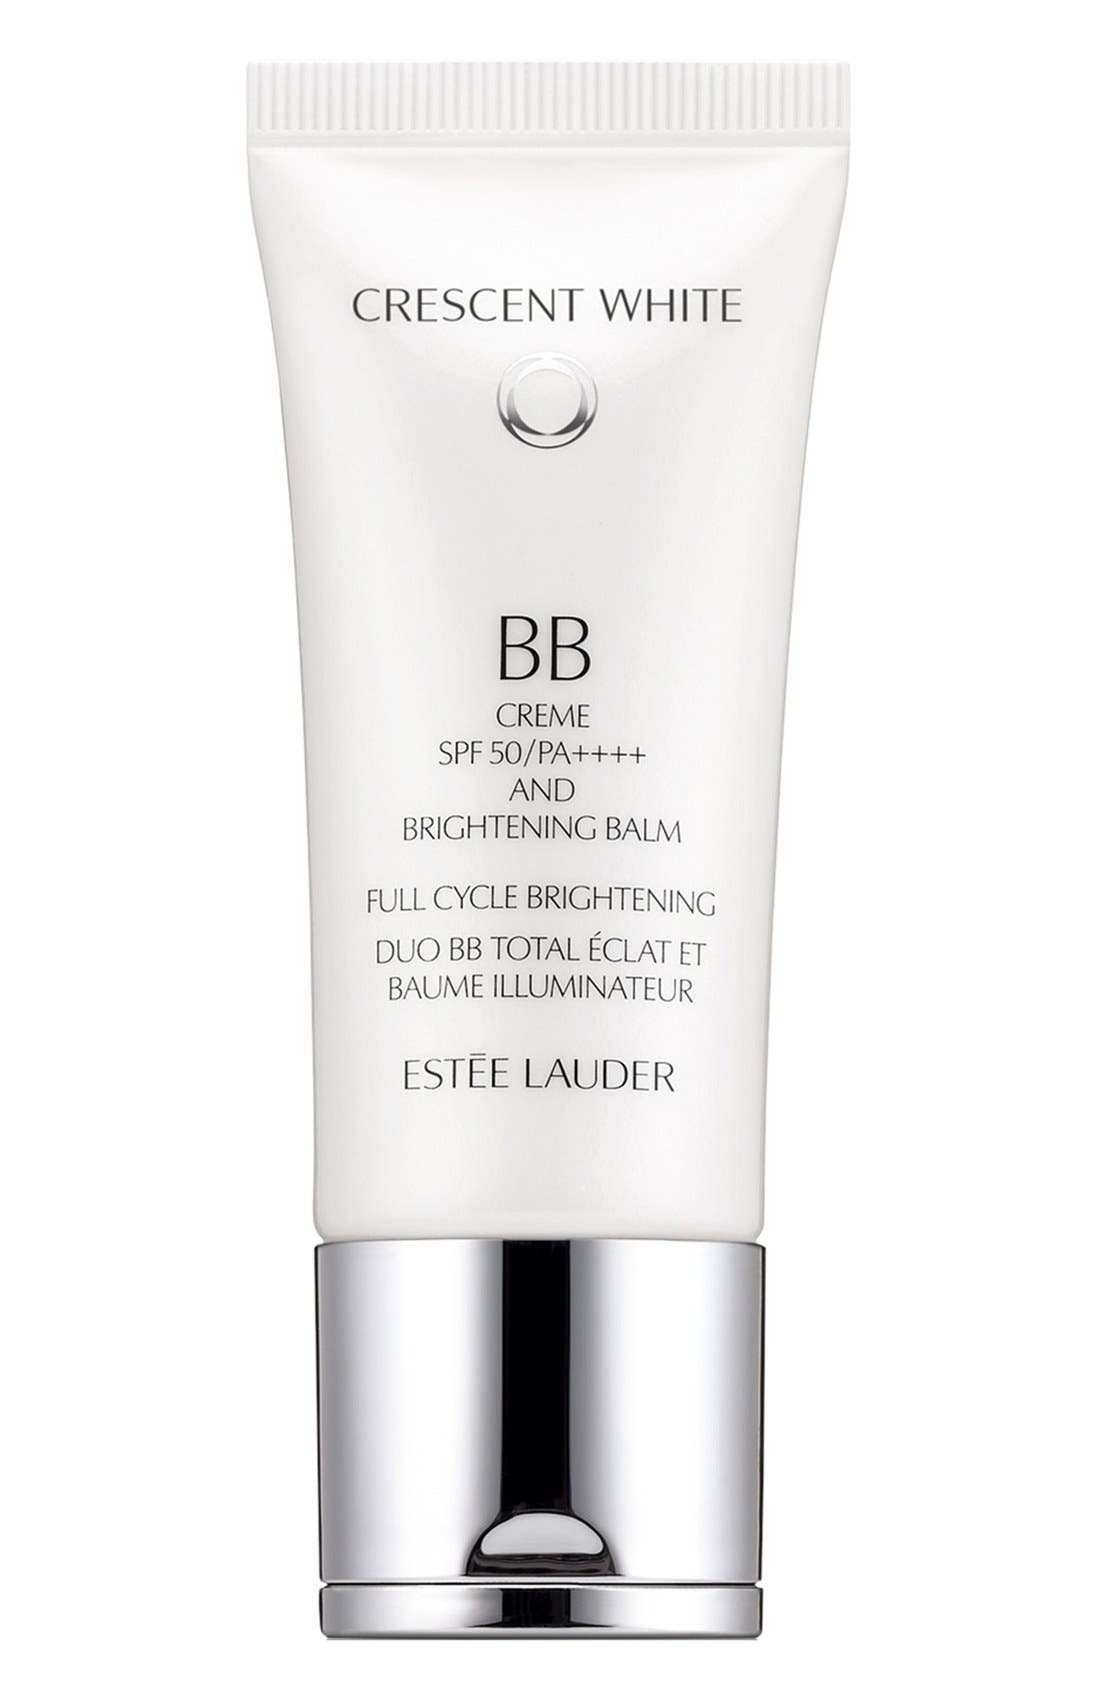 Estée Lauder 'Crescent White' Full Cycle BB Créme & Brightening Balm SPF 50